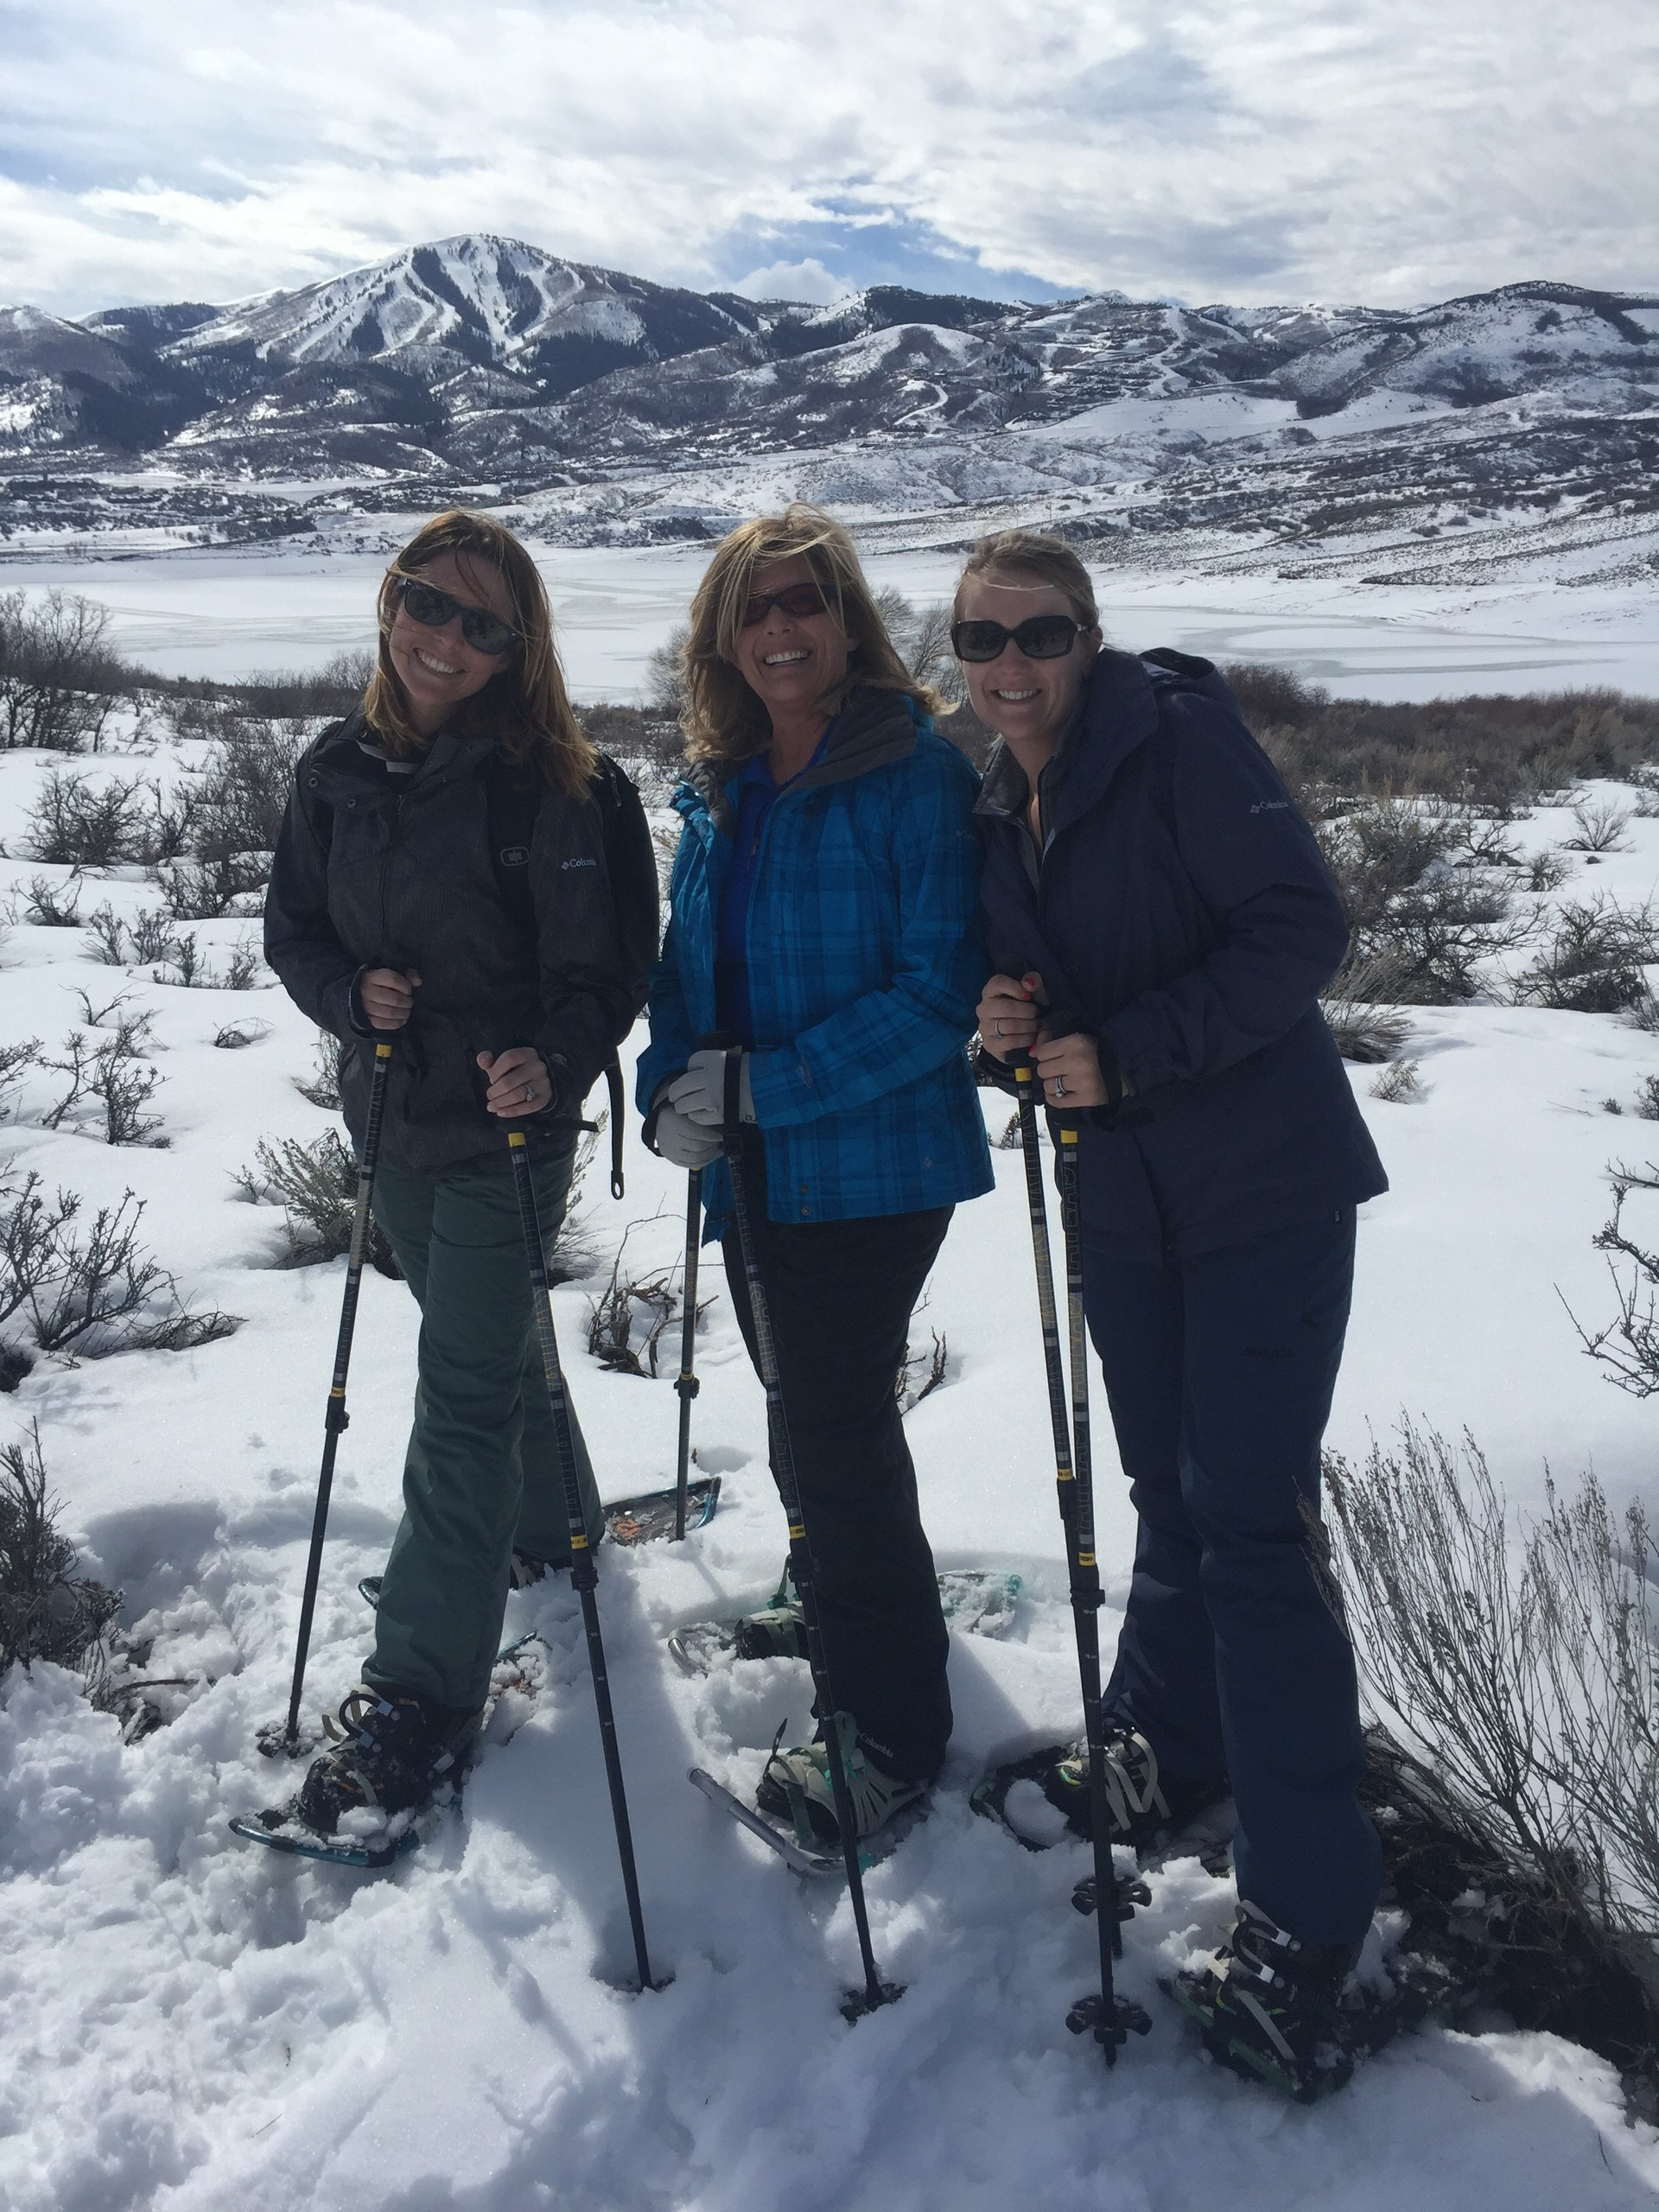 Mrs. Summers and her family in Utah